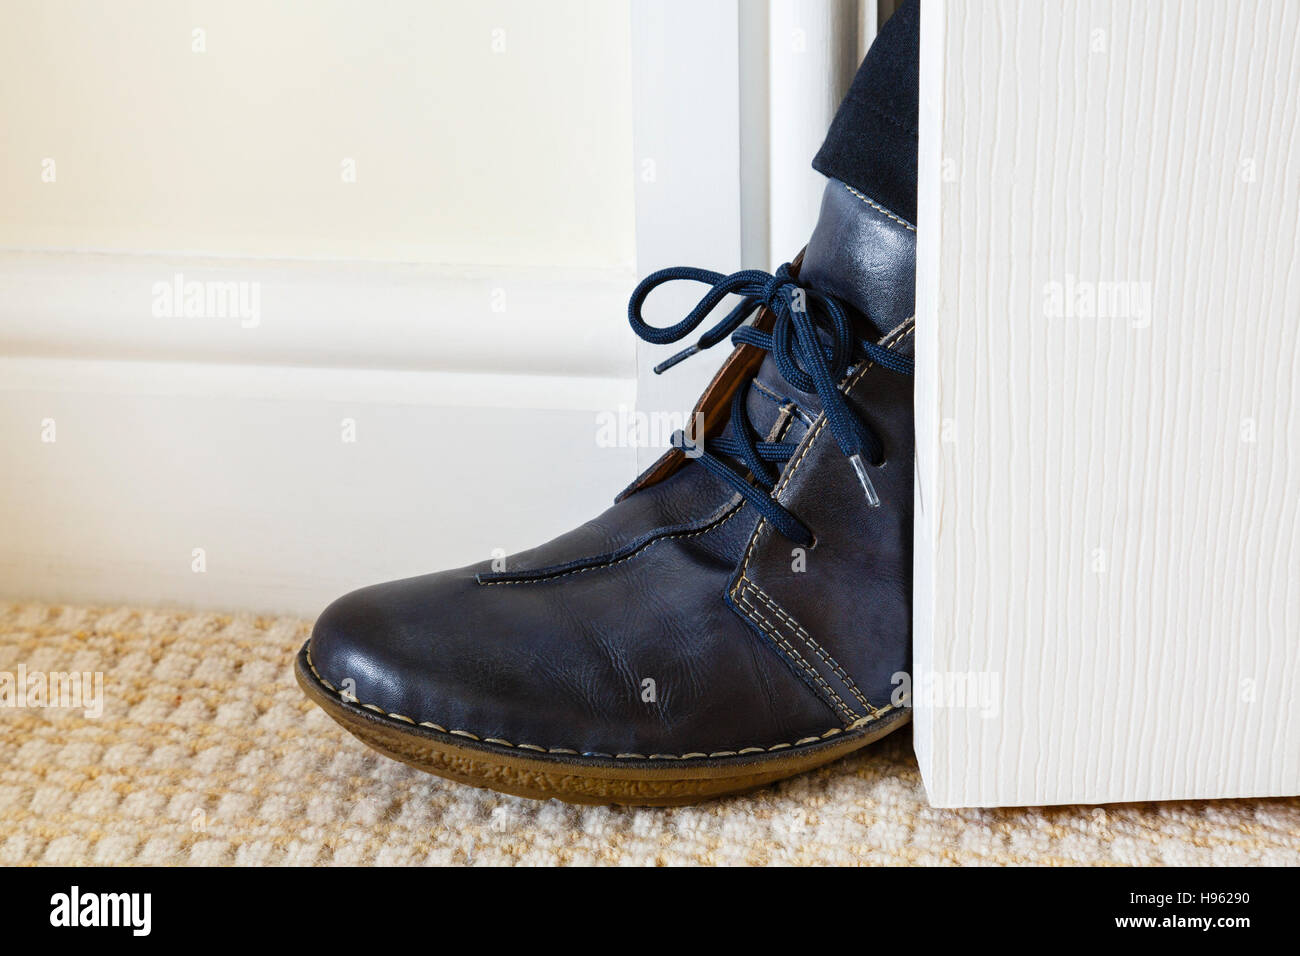 An unwelcome person getting a foot in the open door gap inside a house. England, UK, Britain - Stock Image